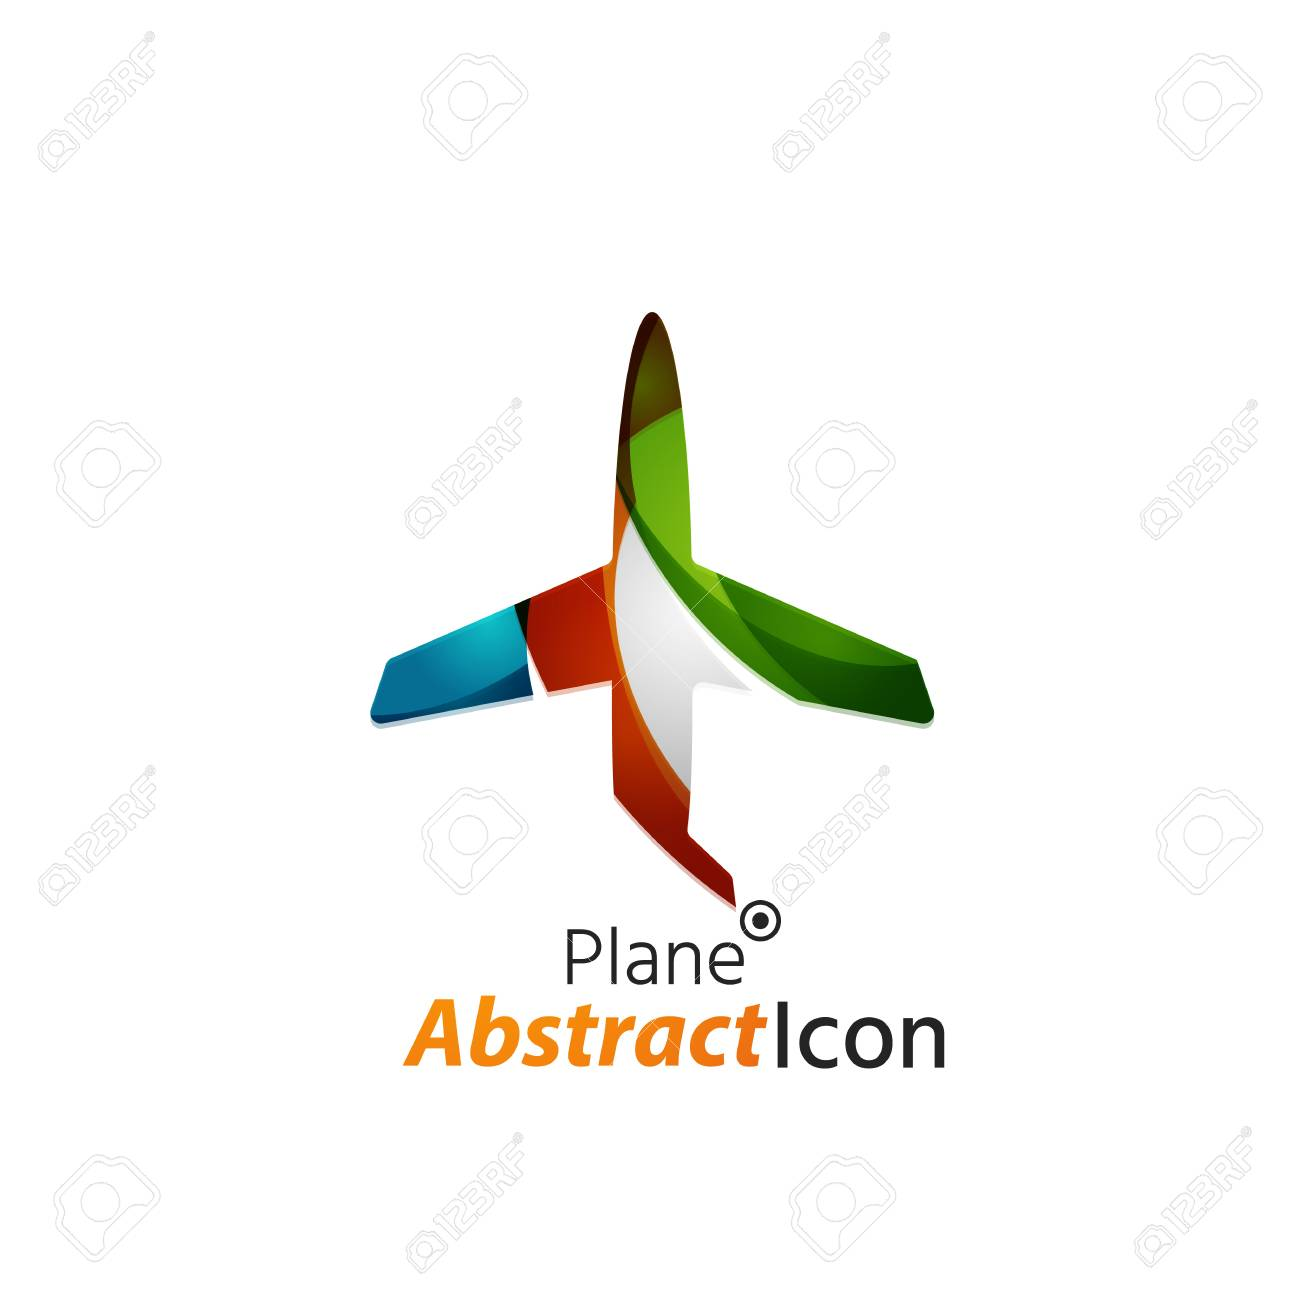 abstract geometric business corporate emblem airplane logo